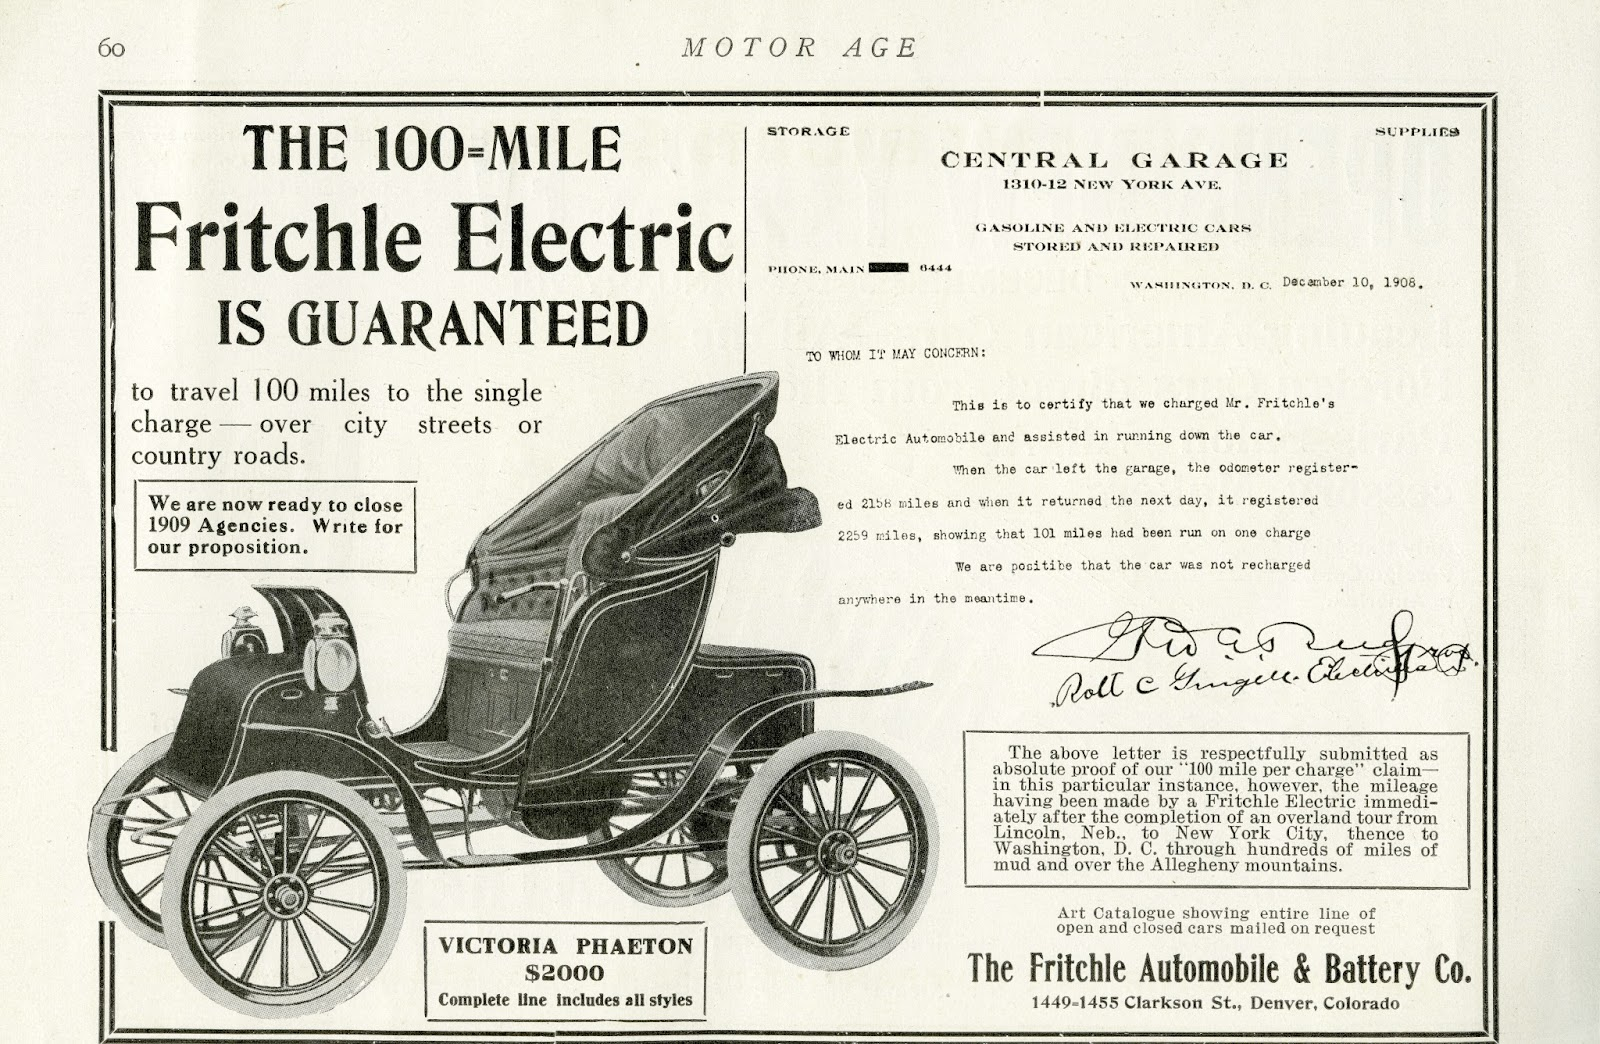 From History 100 Miles On One Charge The Remarkable Fritchle Electric Car By Carl Sulzberger